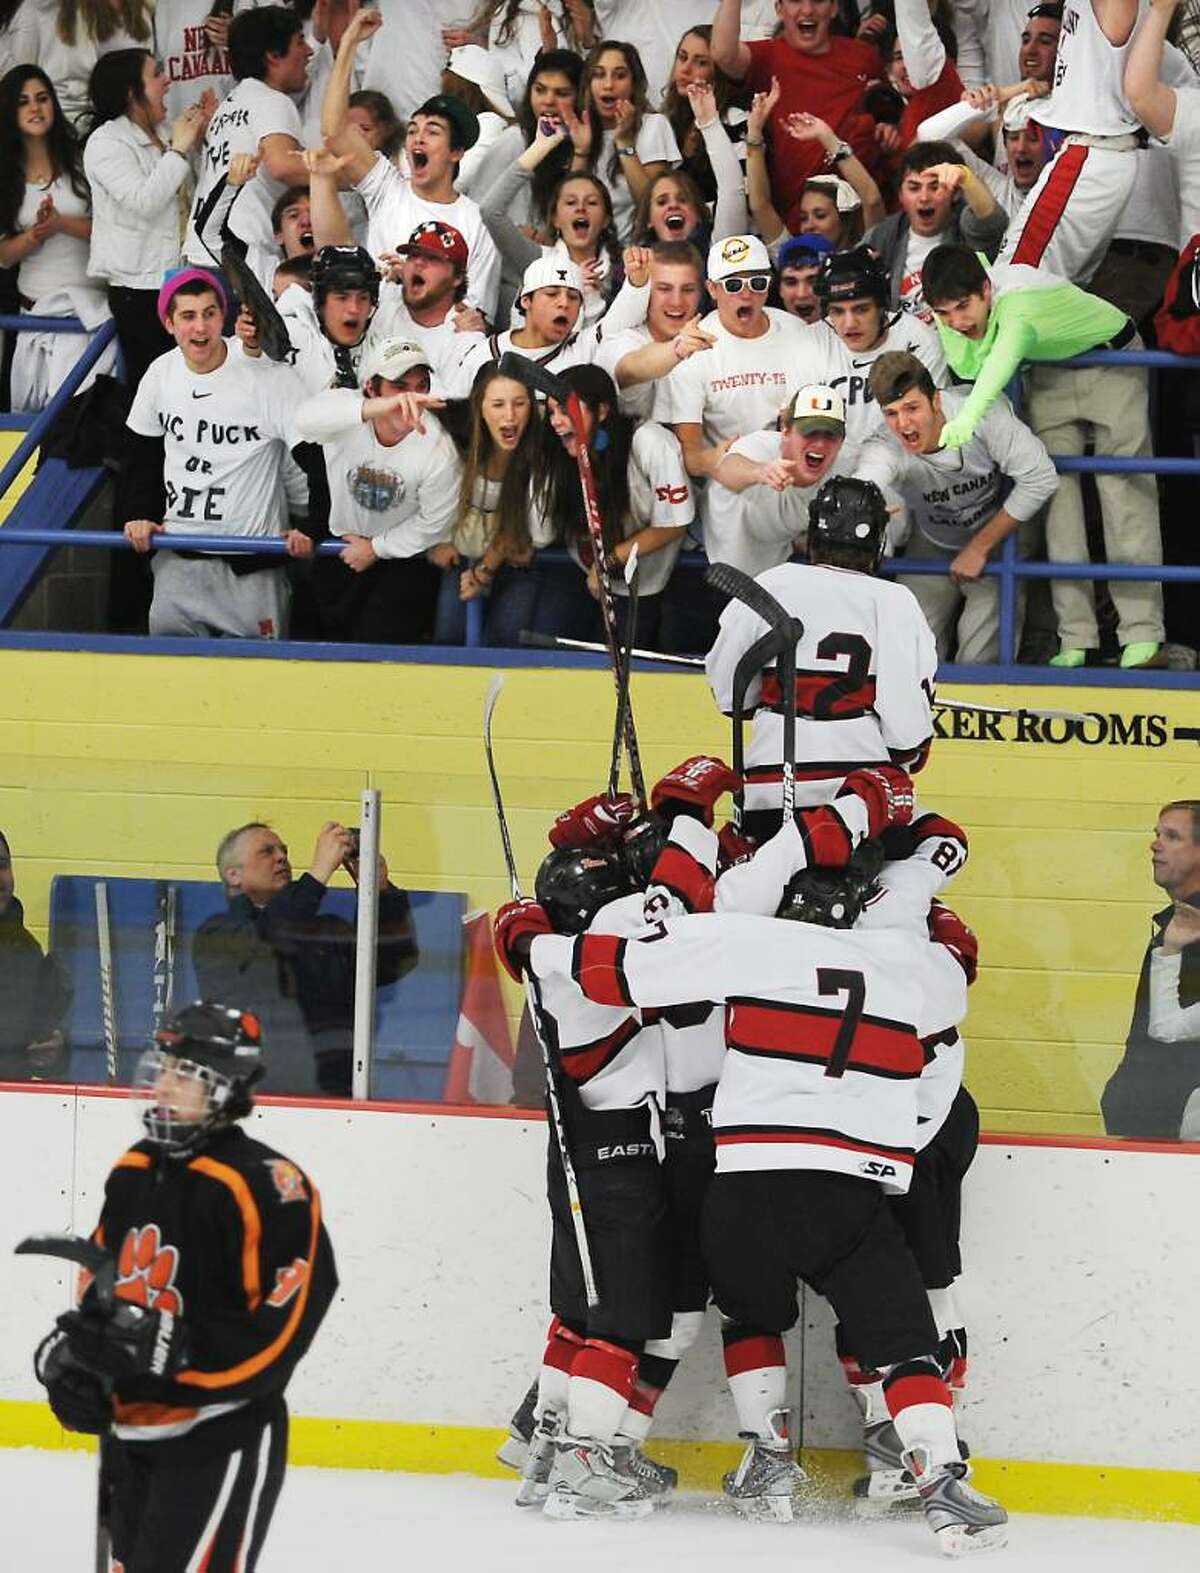 New Canaan's Tim Robustelli jumps up to the fans as he scores in the second period against Ridgefield in the FCIAC boys hockey championship game at Terry Conners Rink in Stamford, Conn. on Saturday, March 6, 2010.